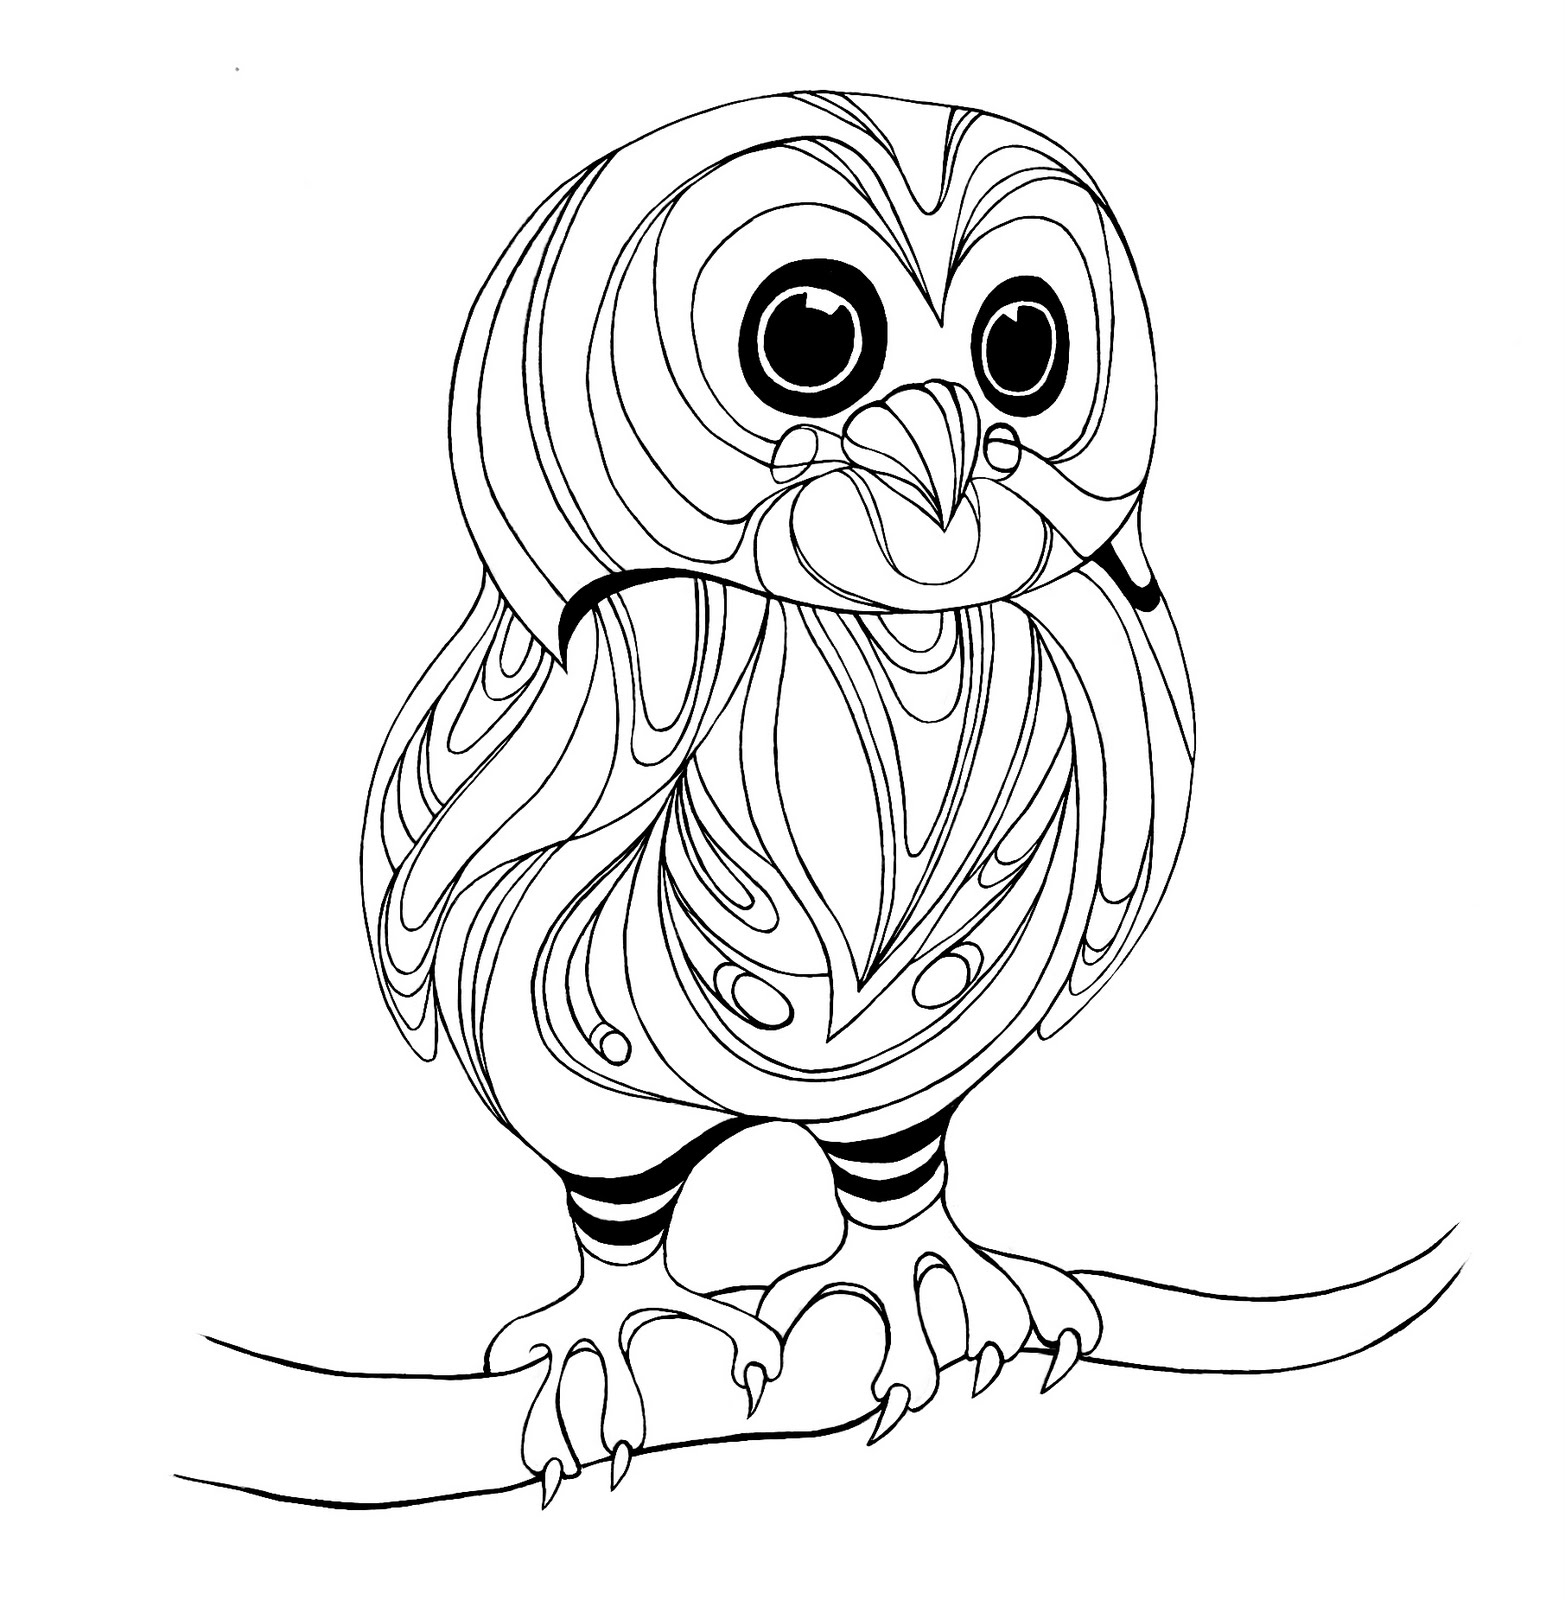 owl coloring page printable colleen keith art illustration blog woodland creatures coloring owl page printable